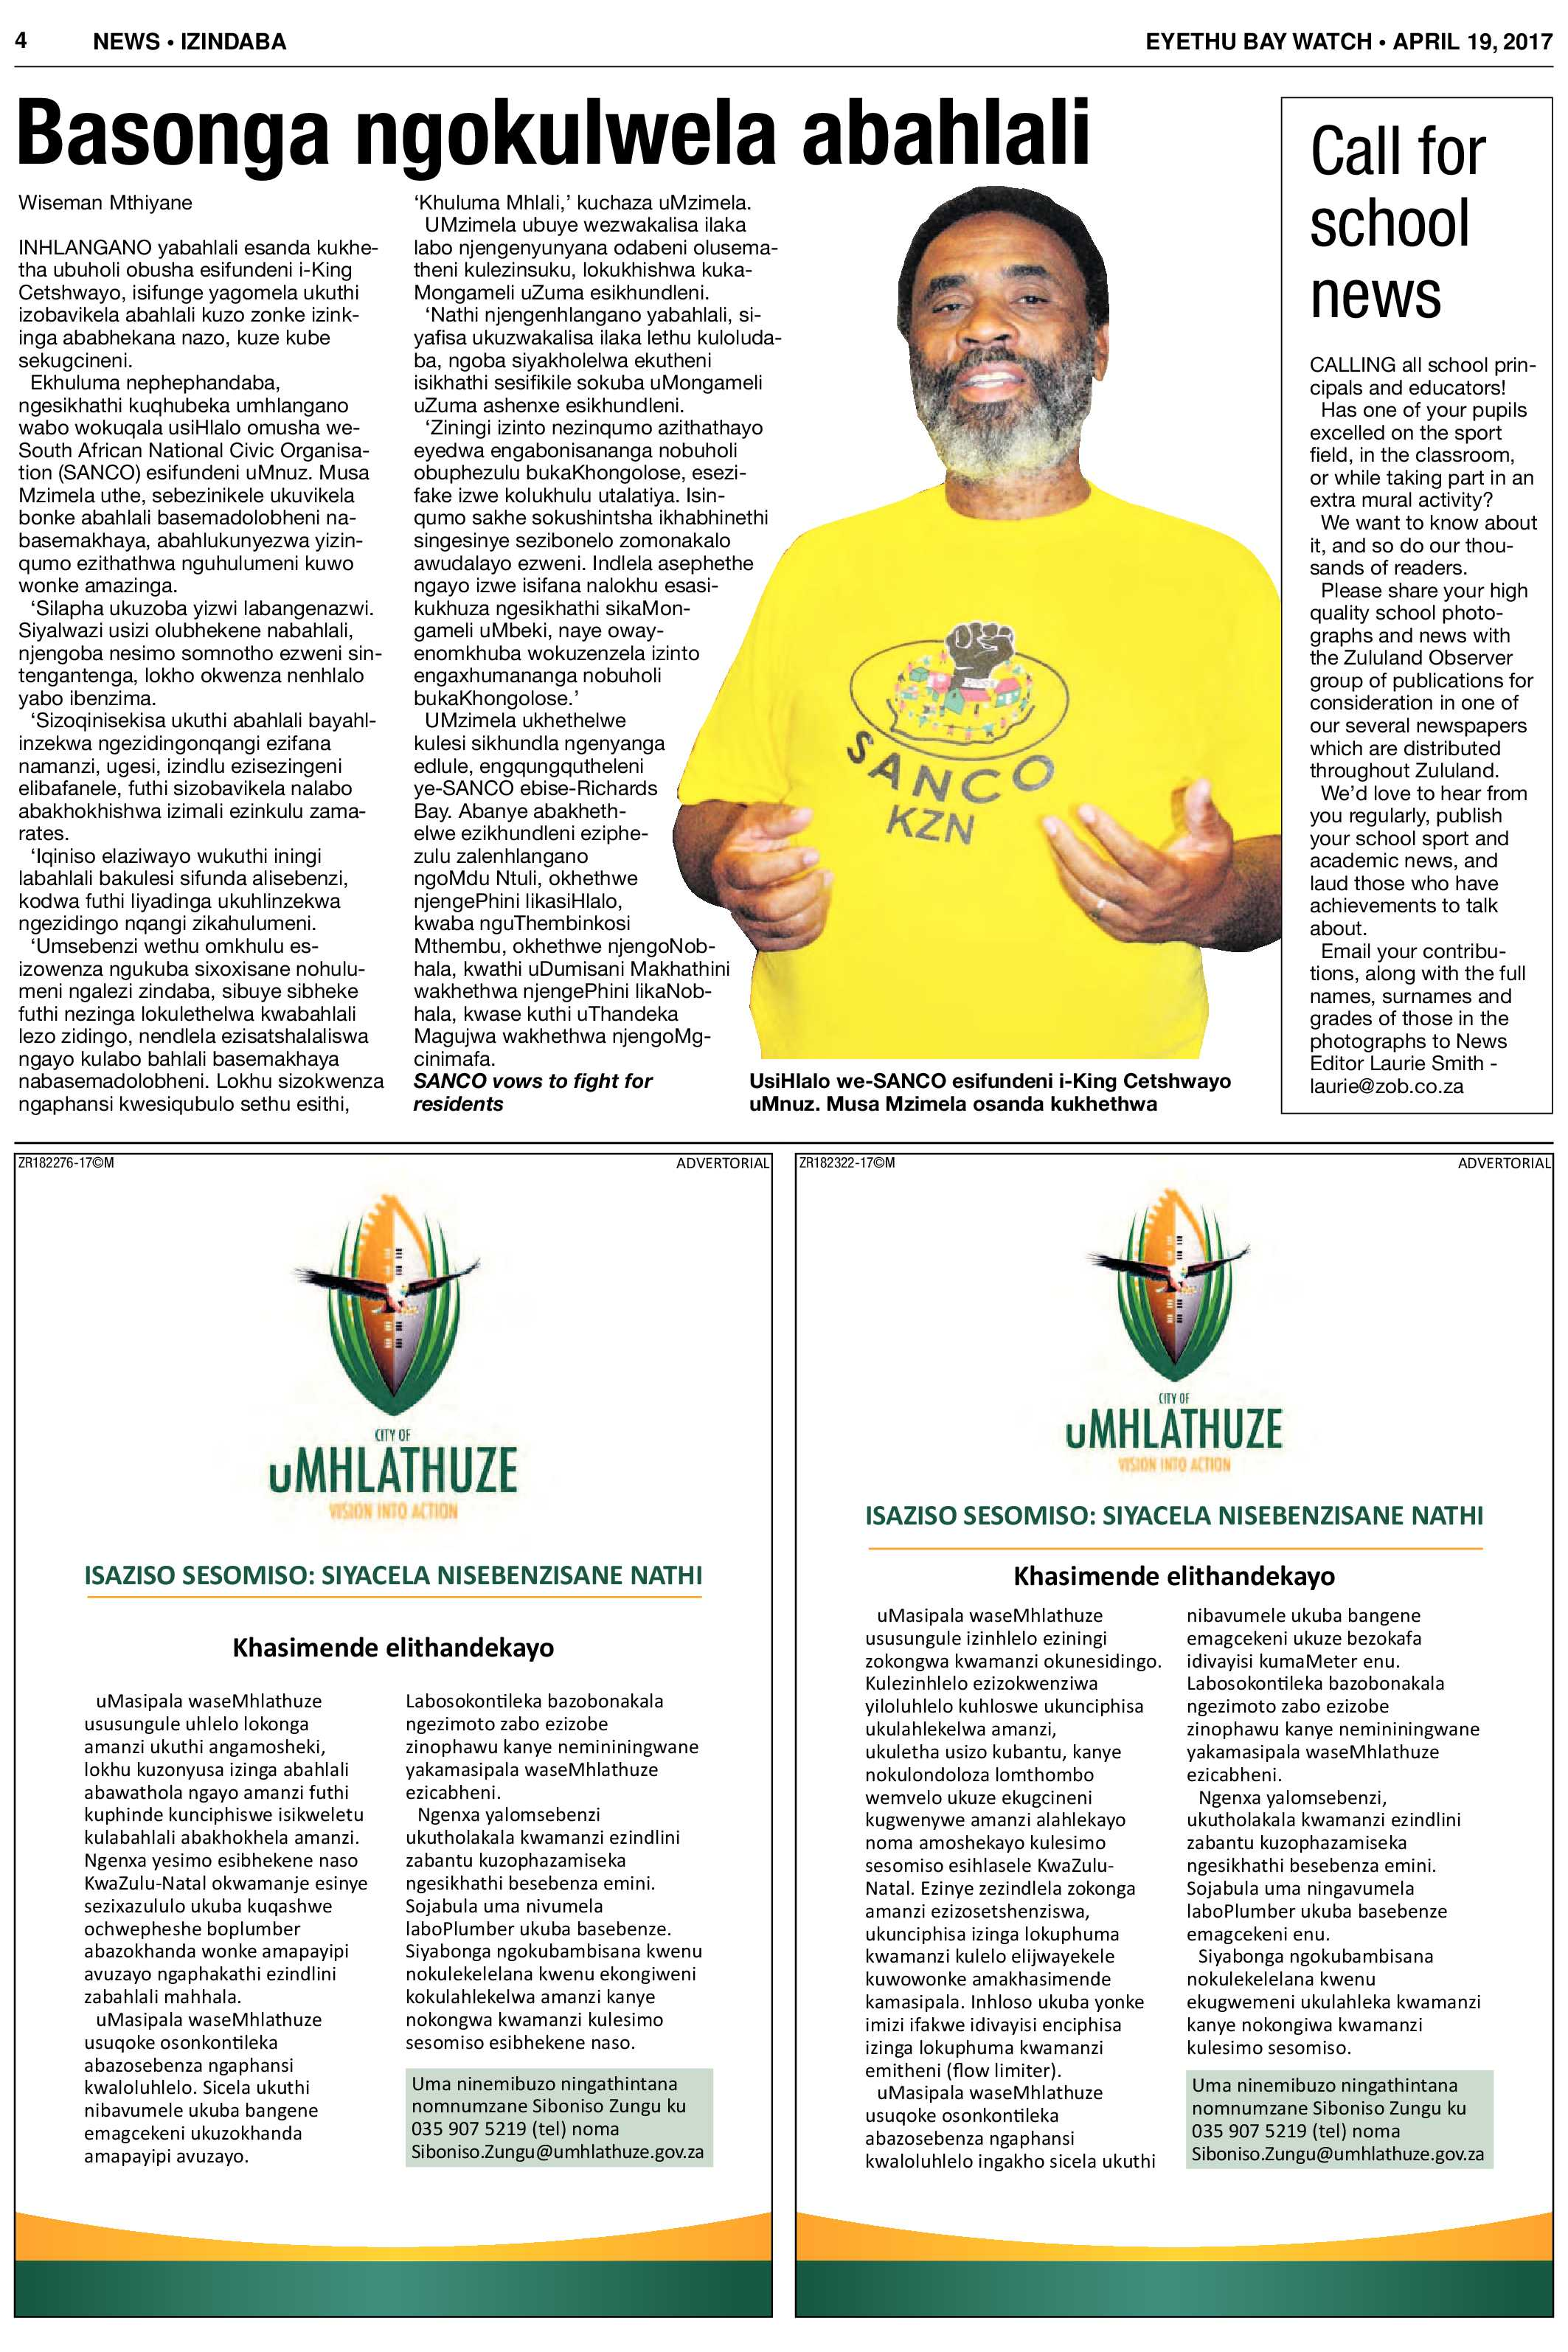 eyethu-baywatch-19-april-epapers-page-4